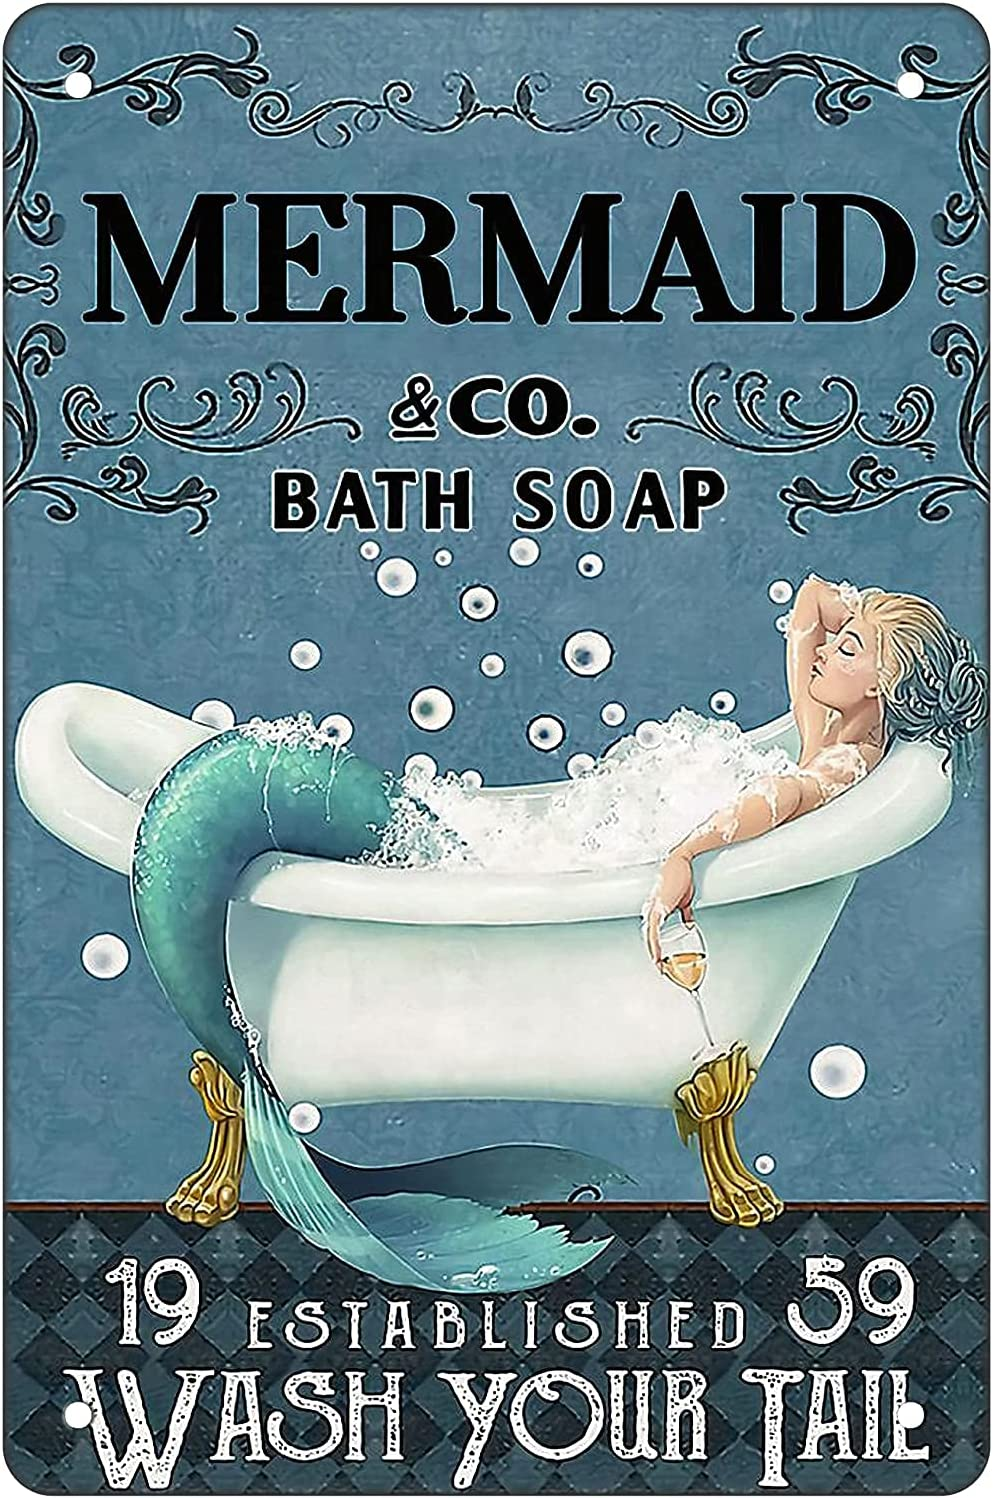 sanstar Funny Mermaid Tin Sign Metal Poster - Mermaid Bath Soap Wash Your Tail - Retro Metal Sign for Home Kitchen Bathroom Farm Garden Garage Inspirational Quotes Wall Decor Art Gifts 8X12 Inch